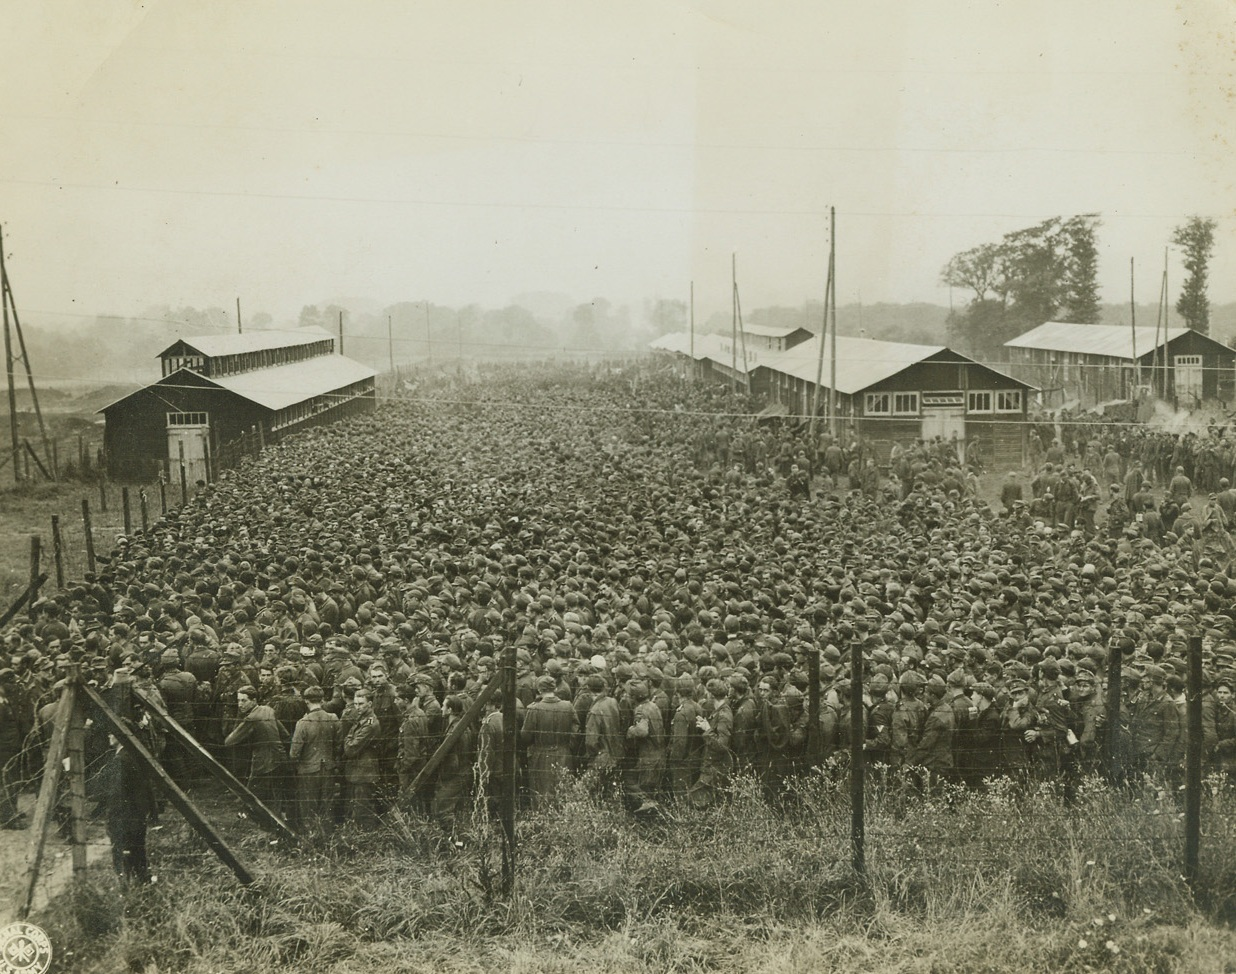 """Ten Thousand Hungry """"Supermen"""", 8/29/1944. France – In this compact mass, stretching far into the background, are ten thousand German prisoners, captured during the Allied drive in France. It's """"chow time"""" here, and they're lining up for their lunch in their stockade somewhere in France. Credit: Signal Corps Photo from ACME;"""